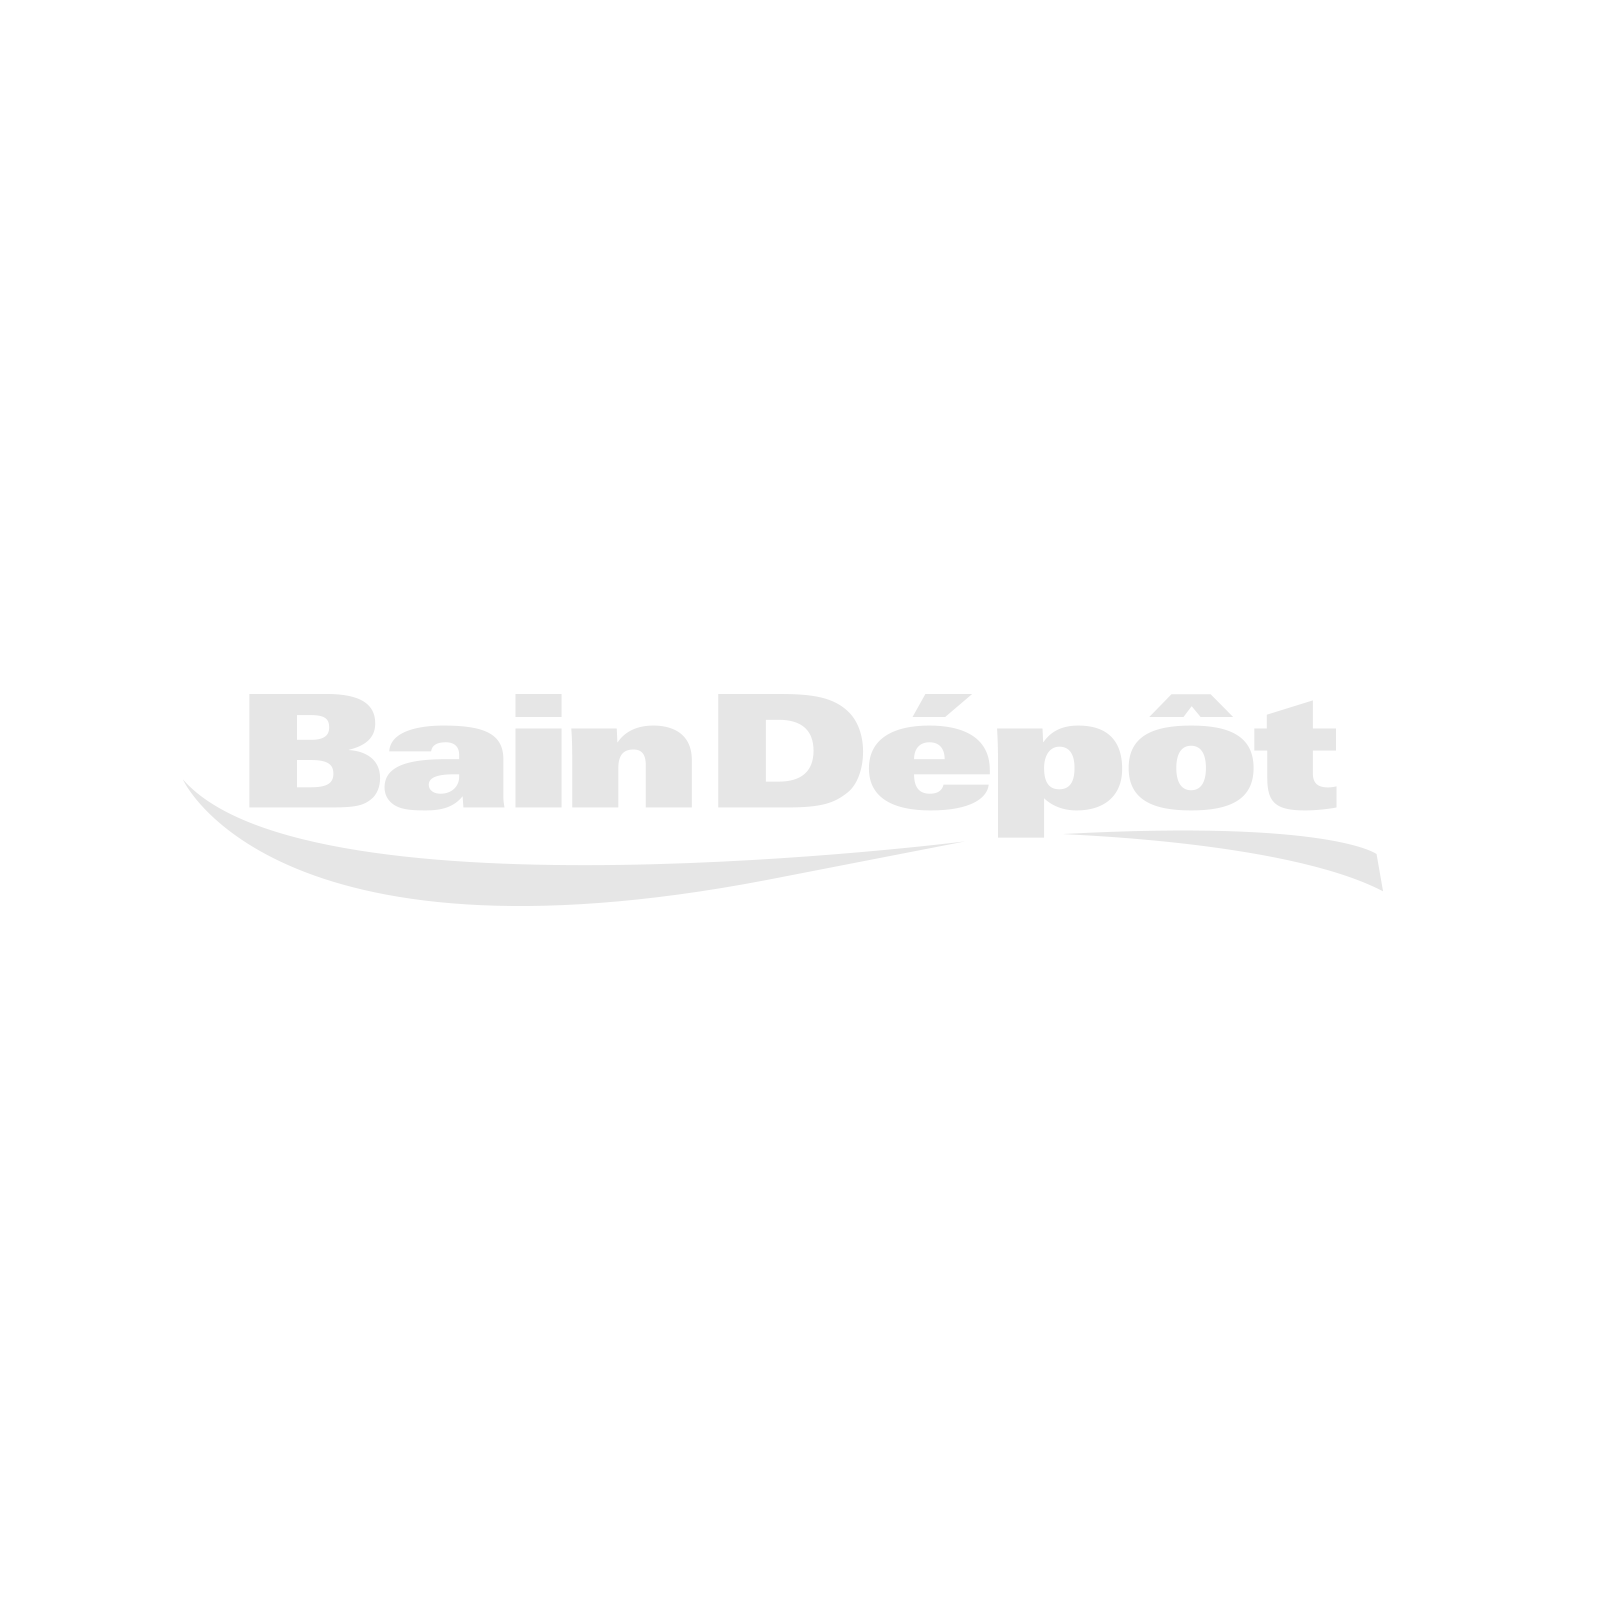 "Undermount kitchen sink 30"" x 18"""